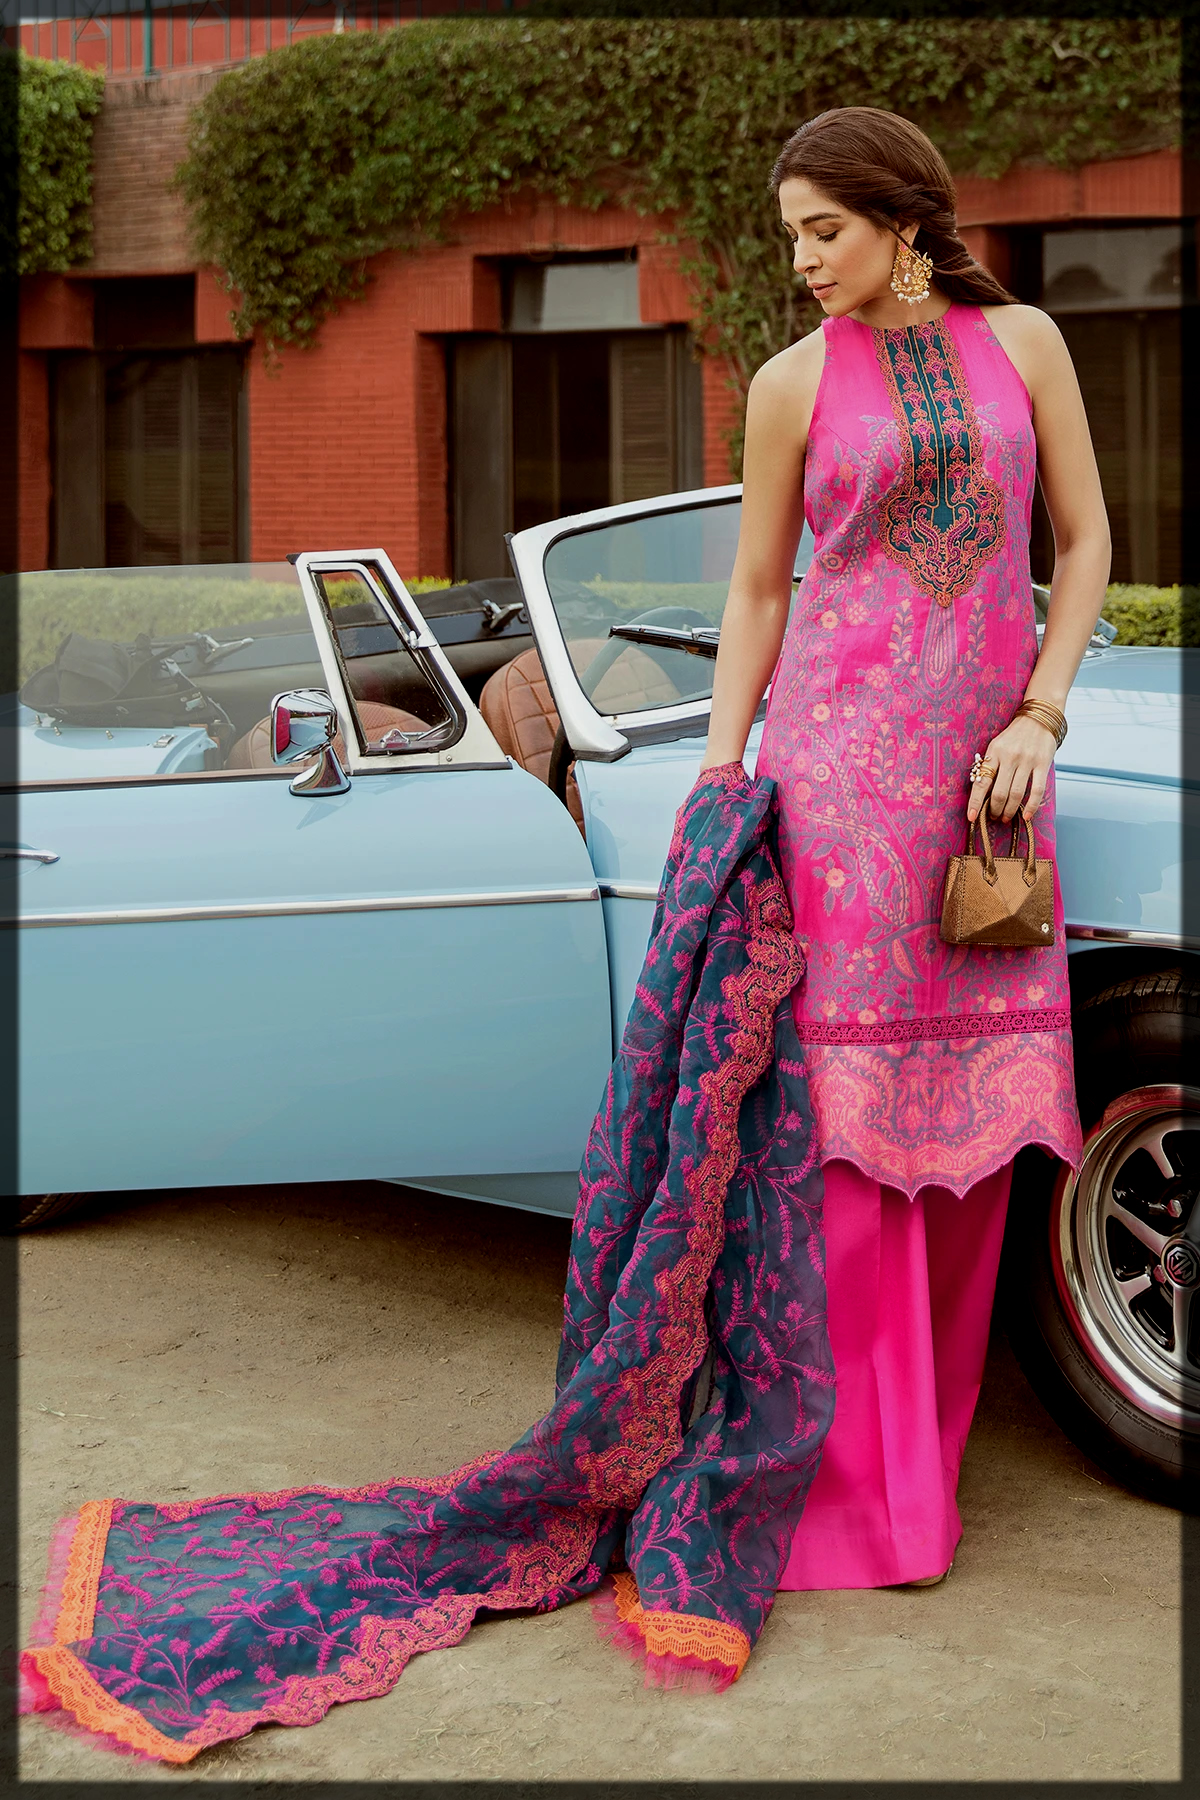 lovely pink summer outfit for women